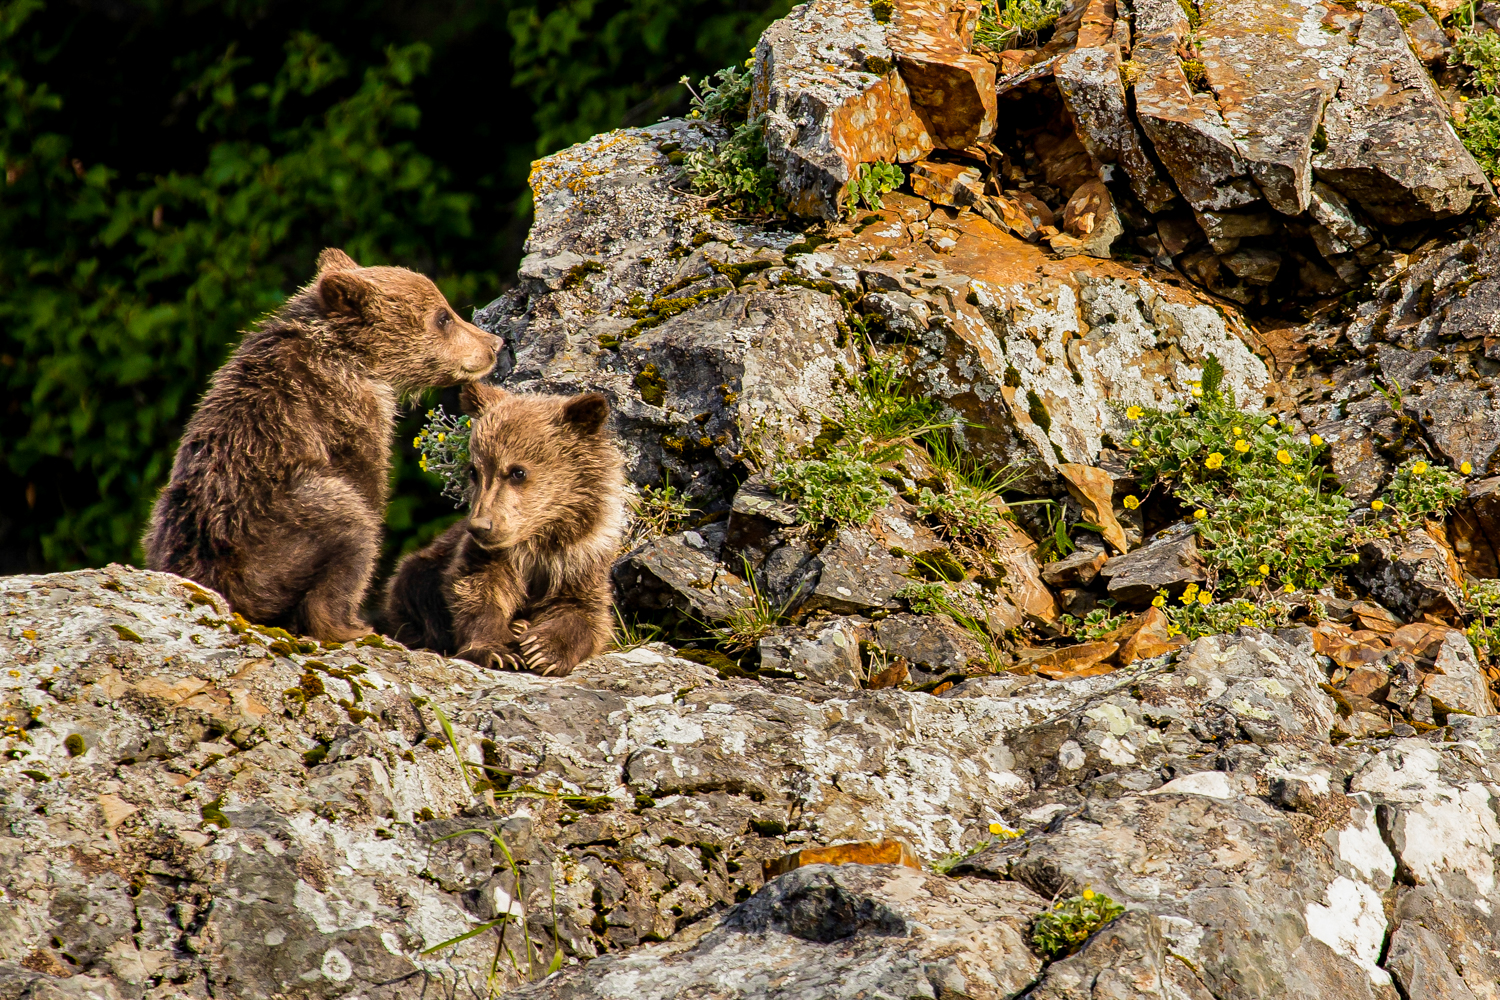 Brown bear spring cubs